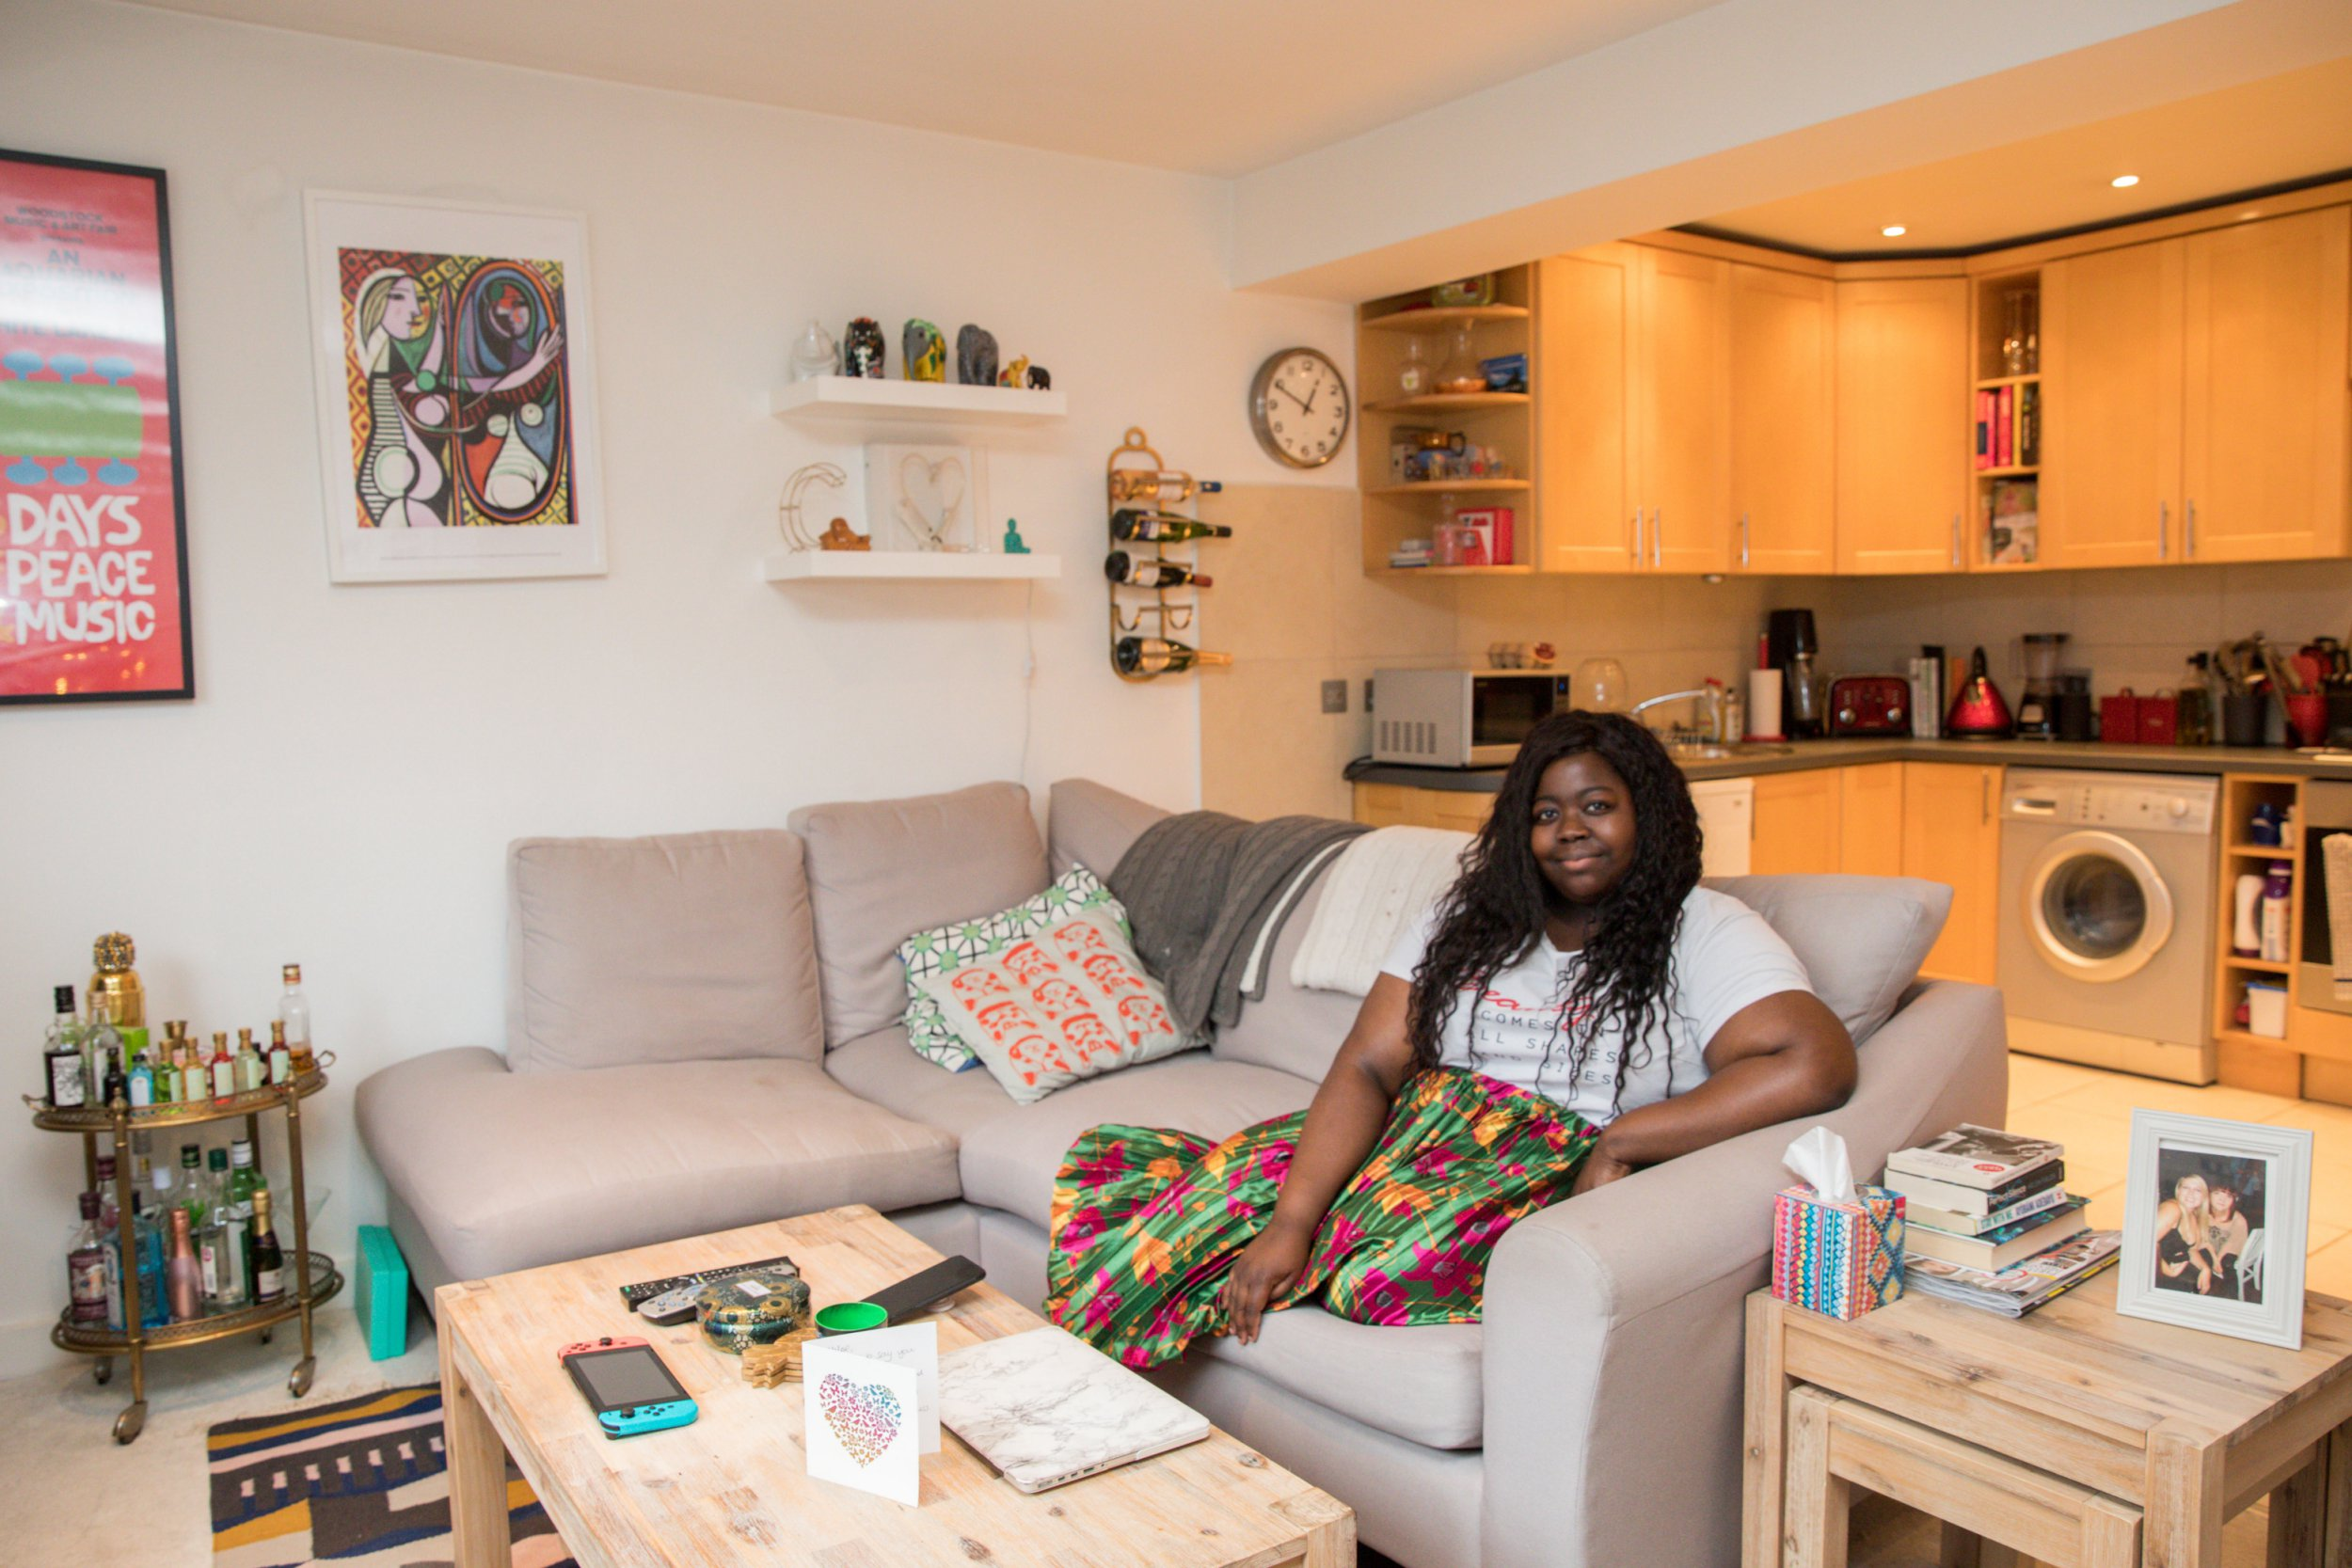 What I Rent: Stephanie, £650 a month to share a two-bedroom flat in Streatham Hill